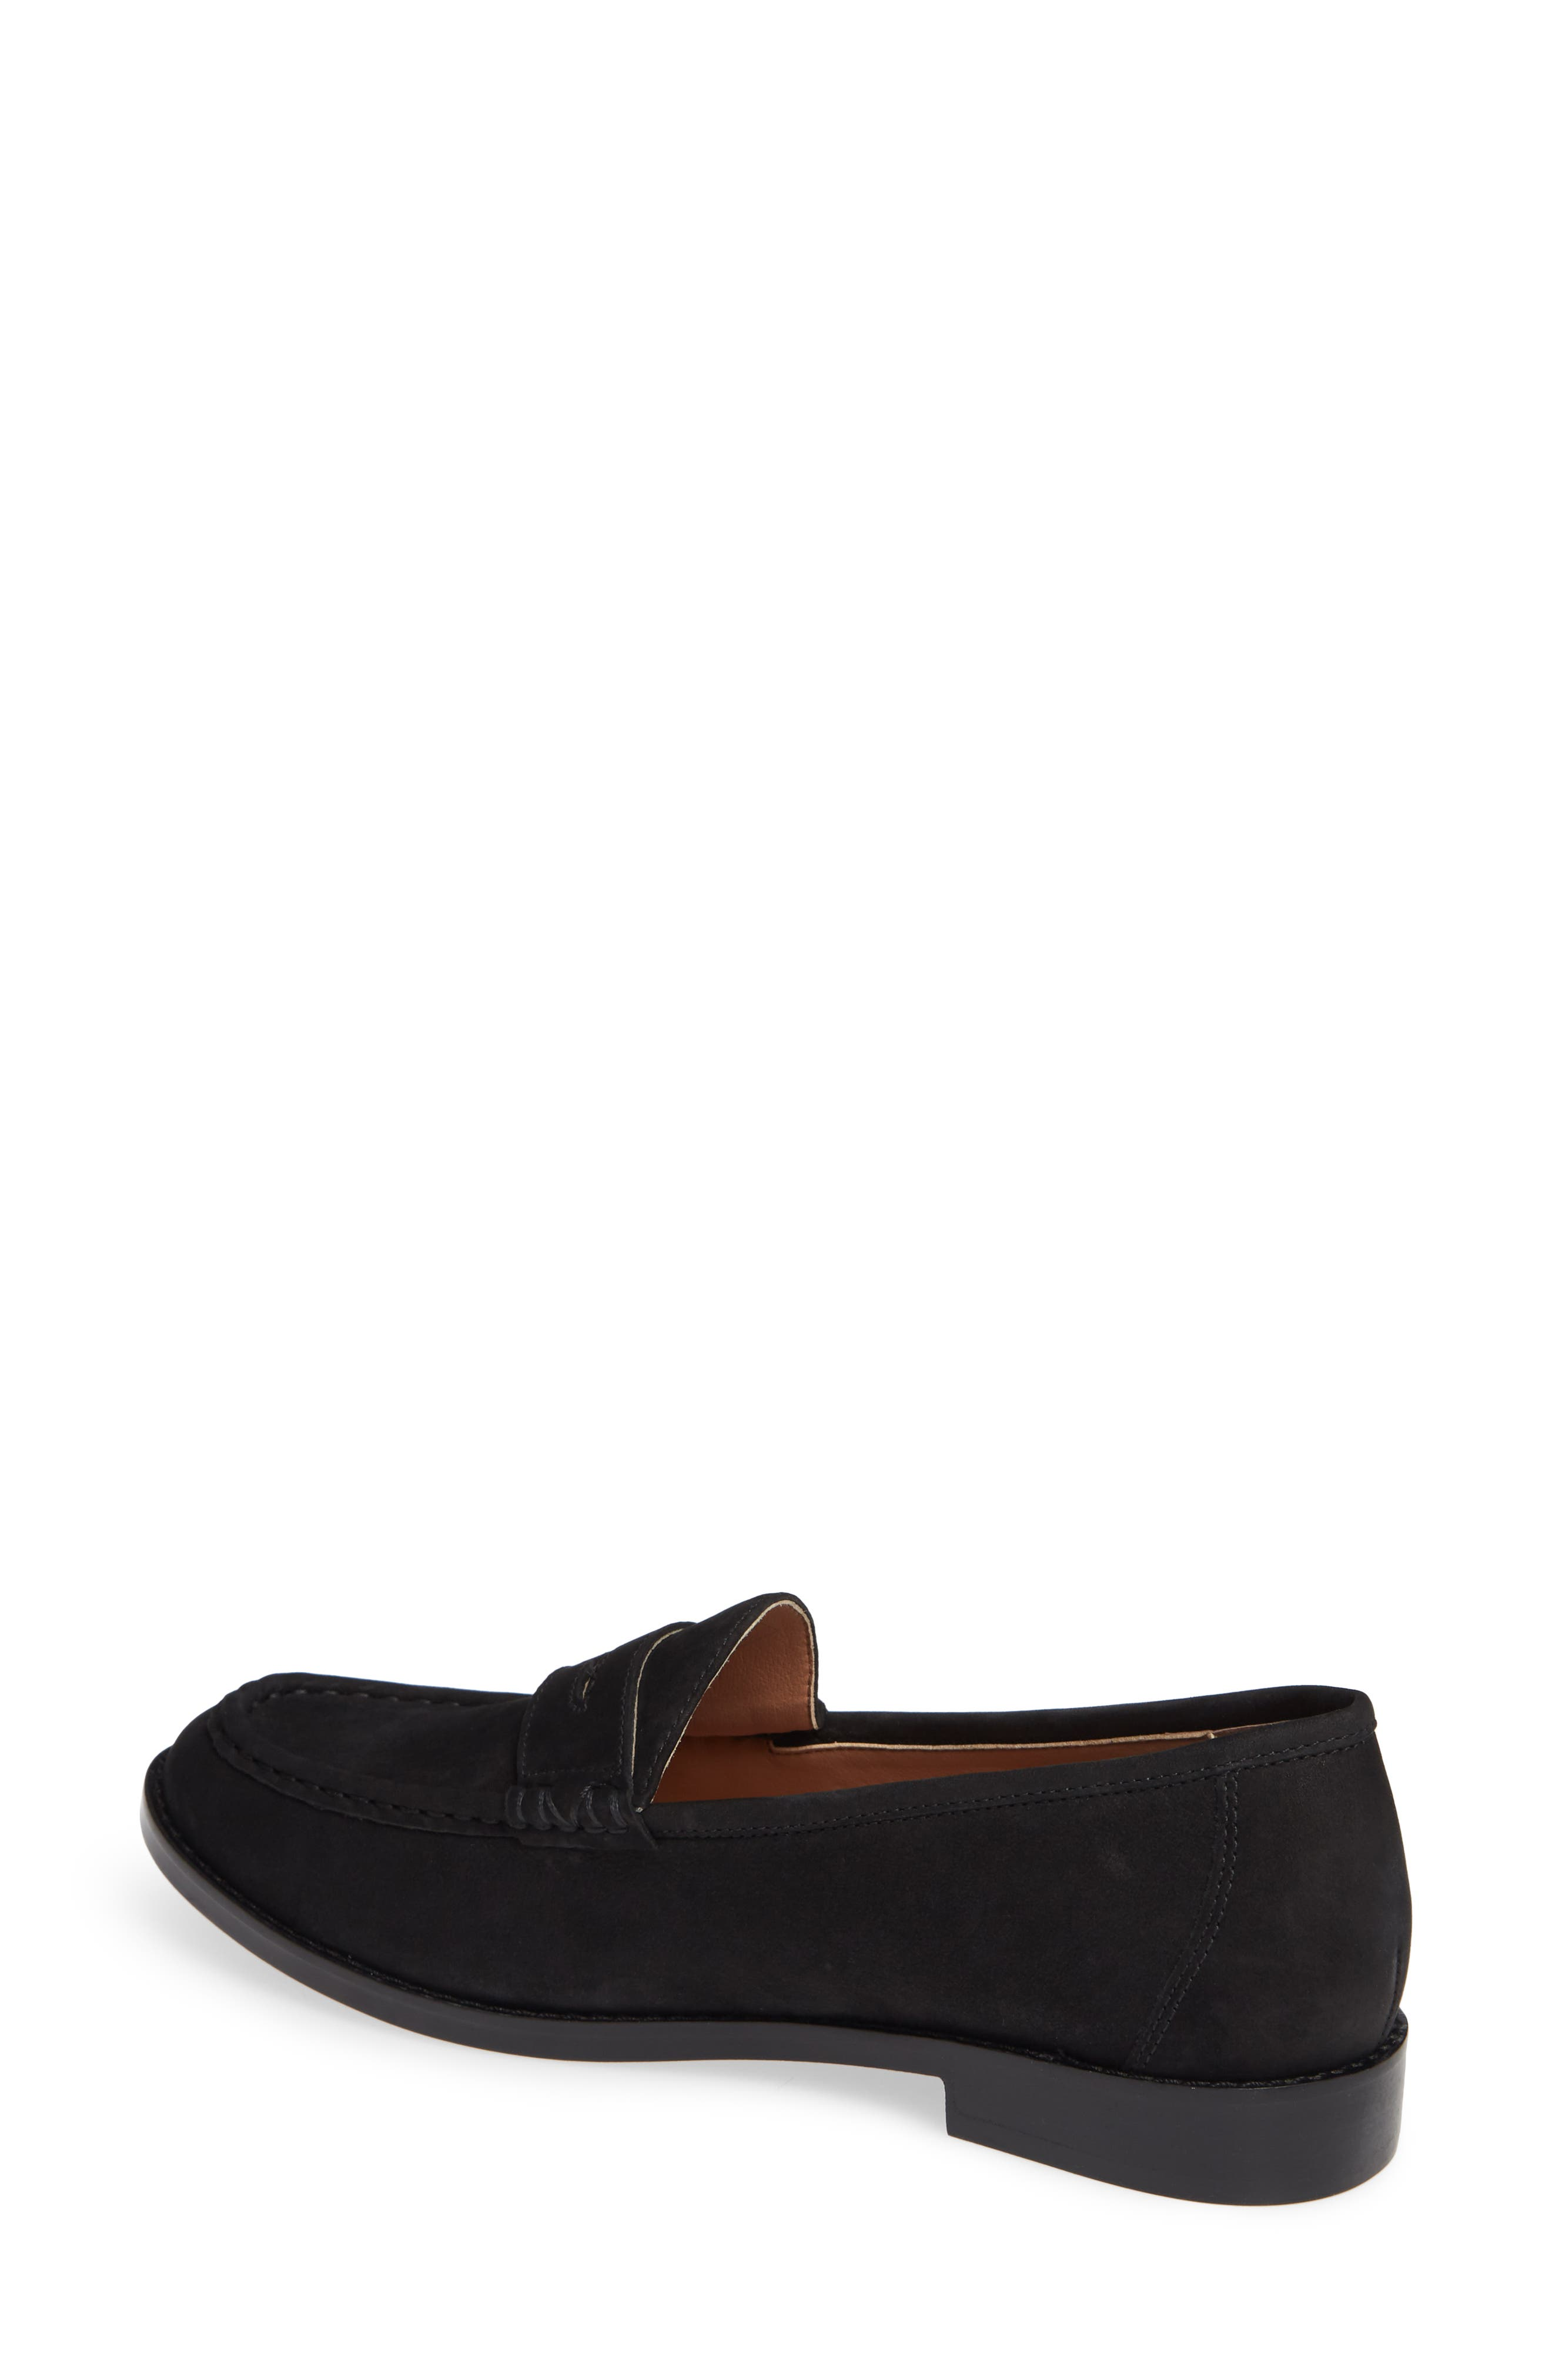 VIONIC, Waverly Loafer, Alternate thumbnail 2, color, BLACK LEATHER